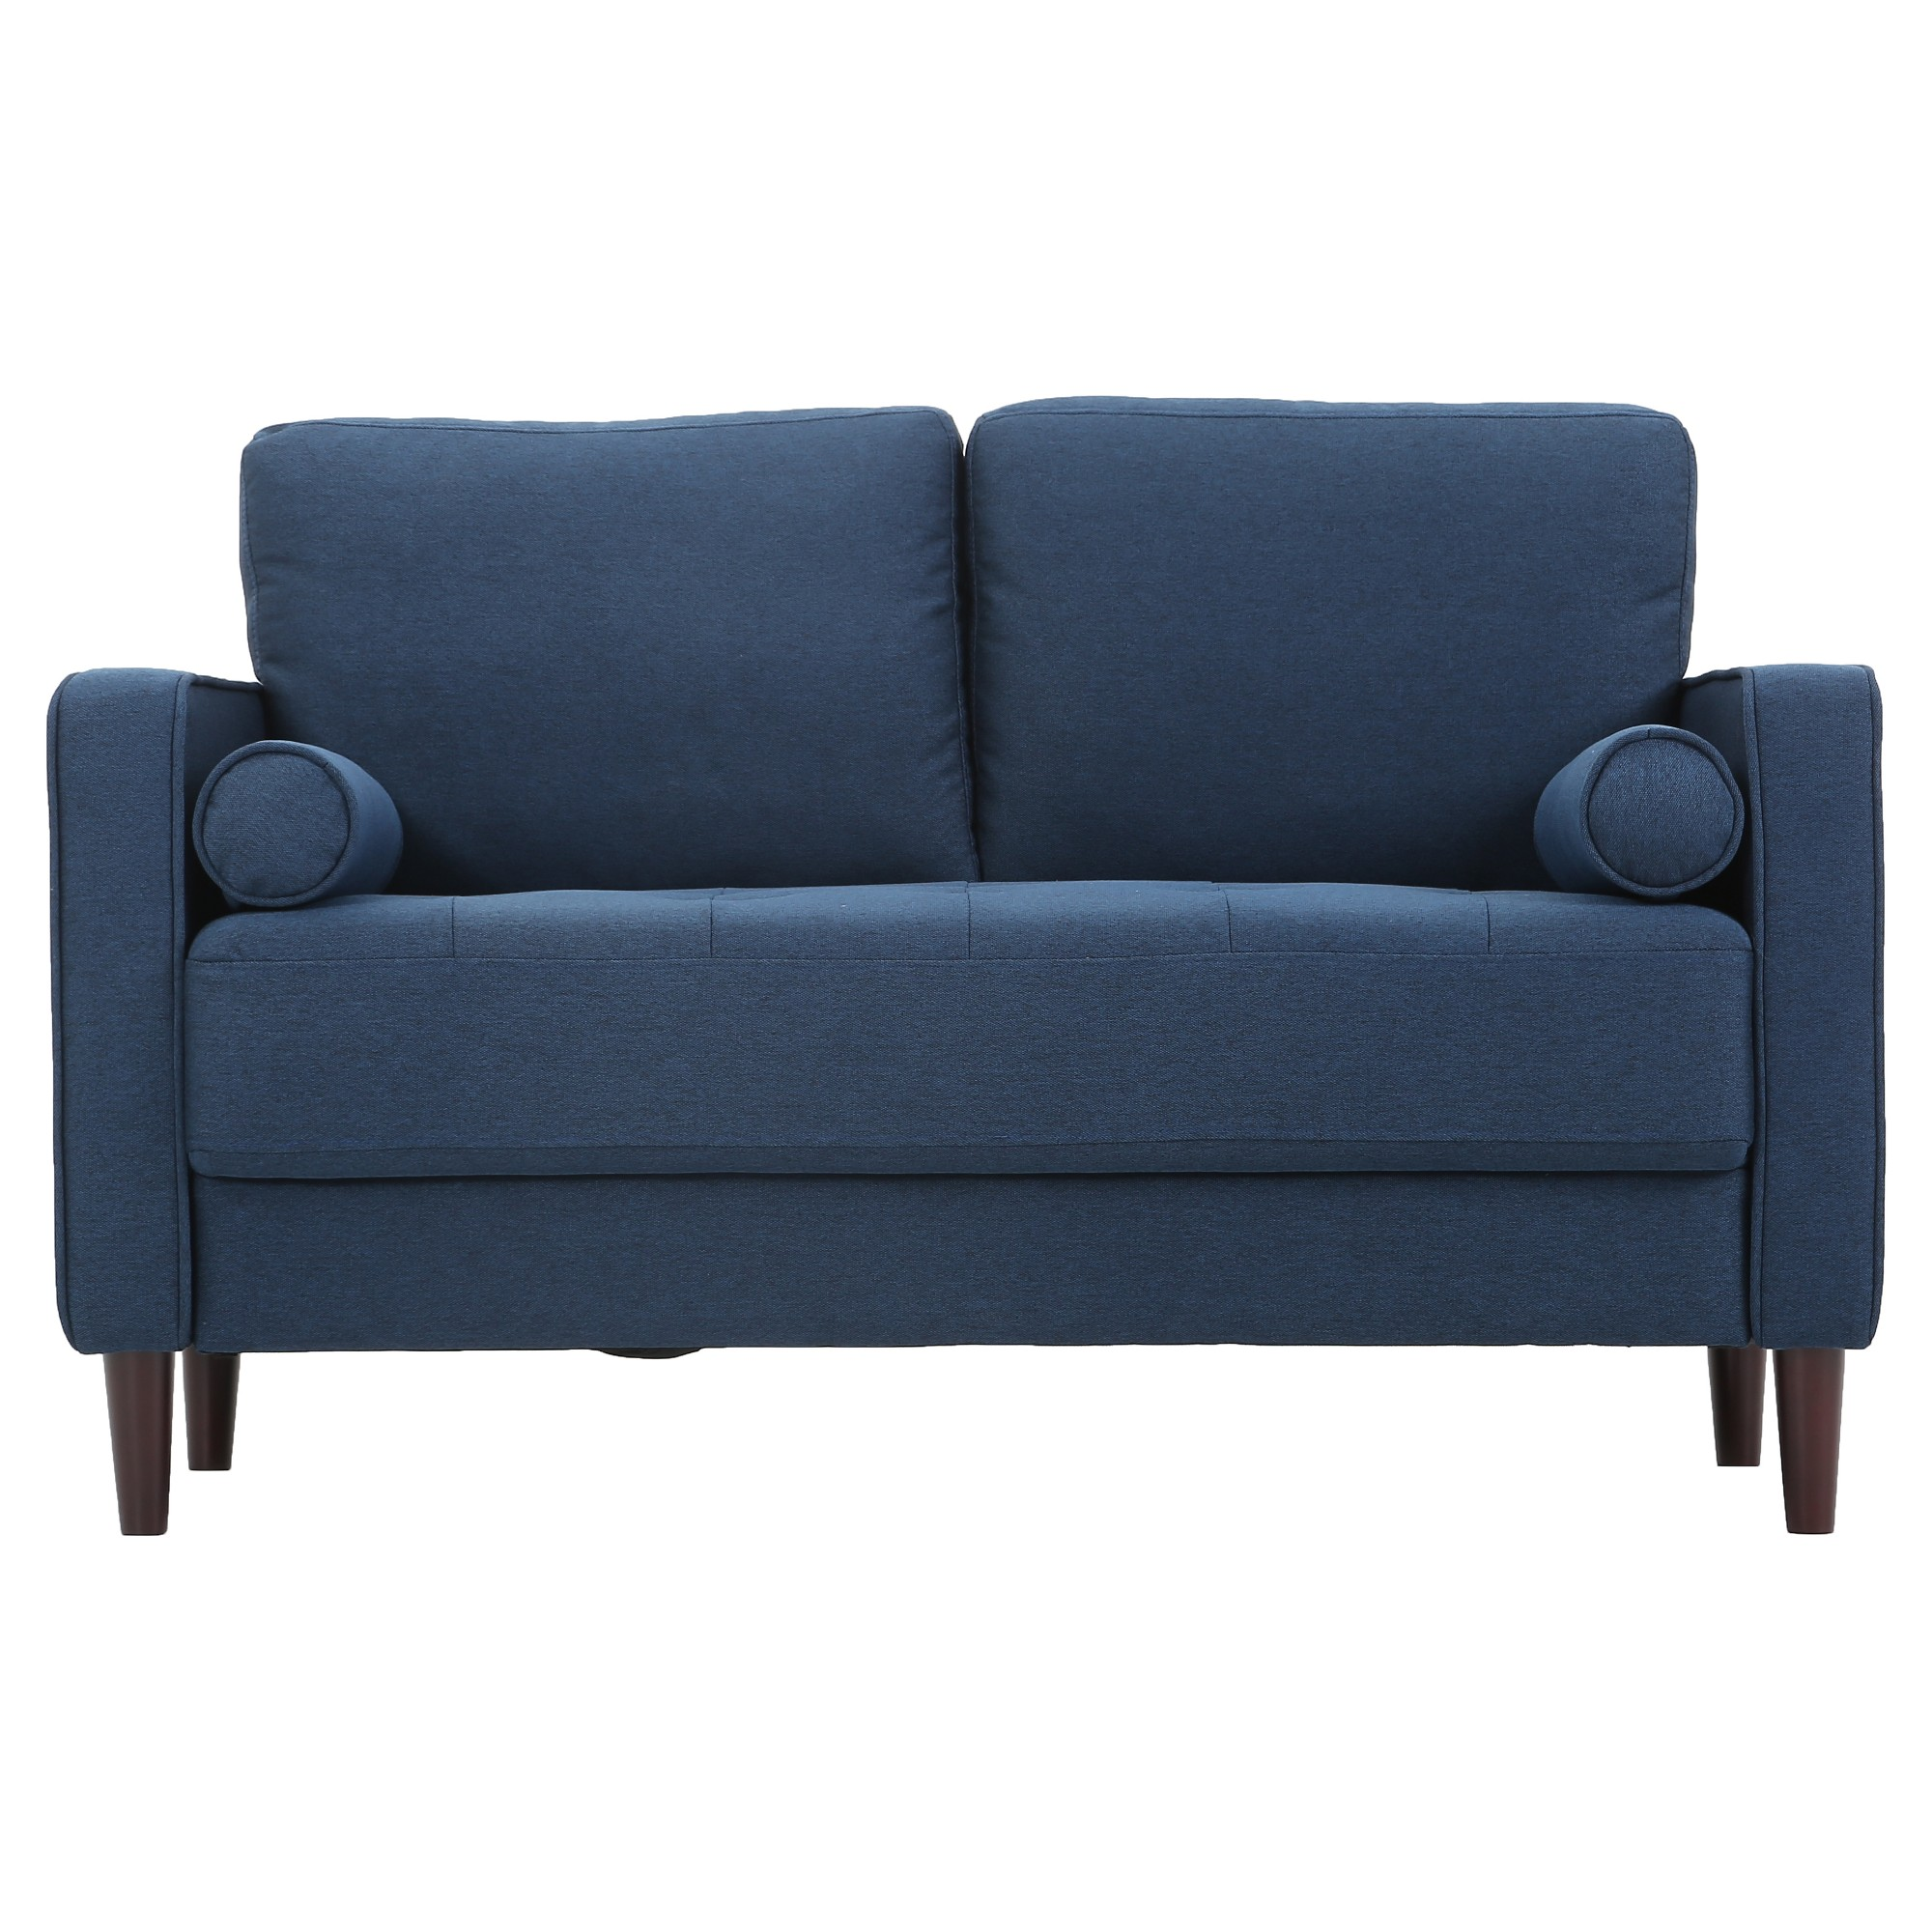 living light size dark full suede crushed room and grey velvetfa sofa blue of ottoman leather couch navy loveseat